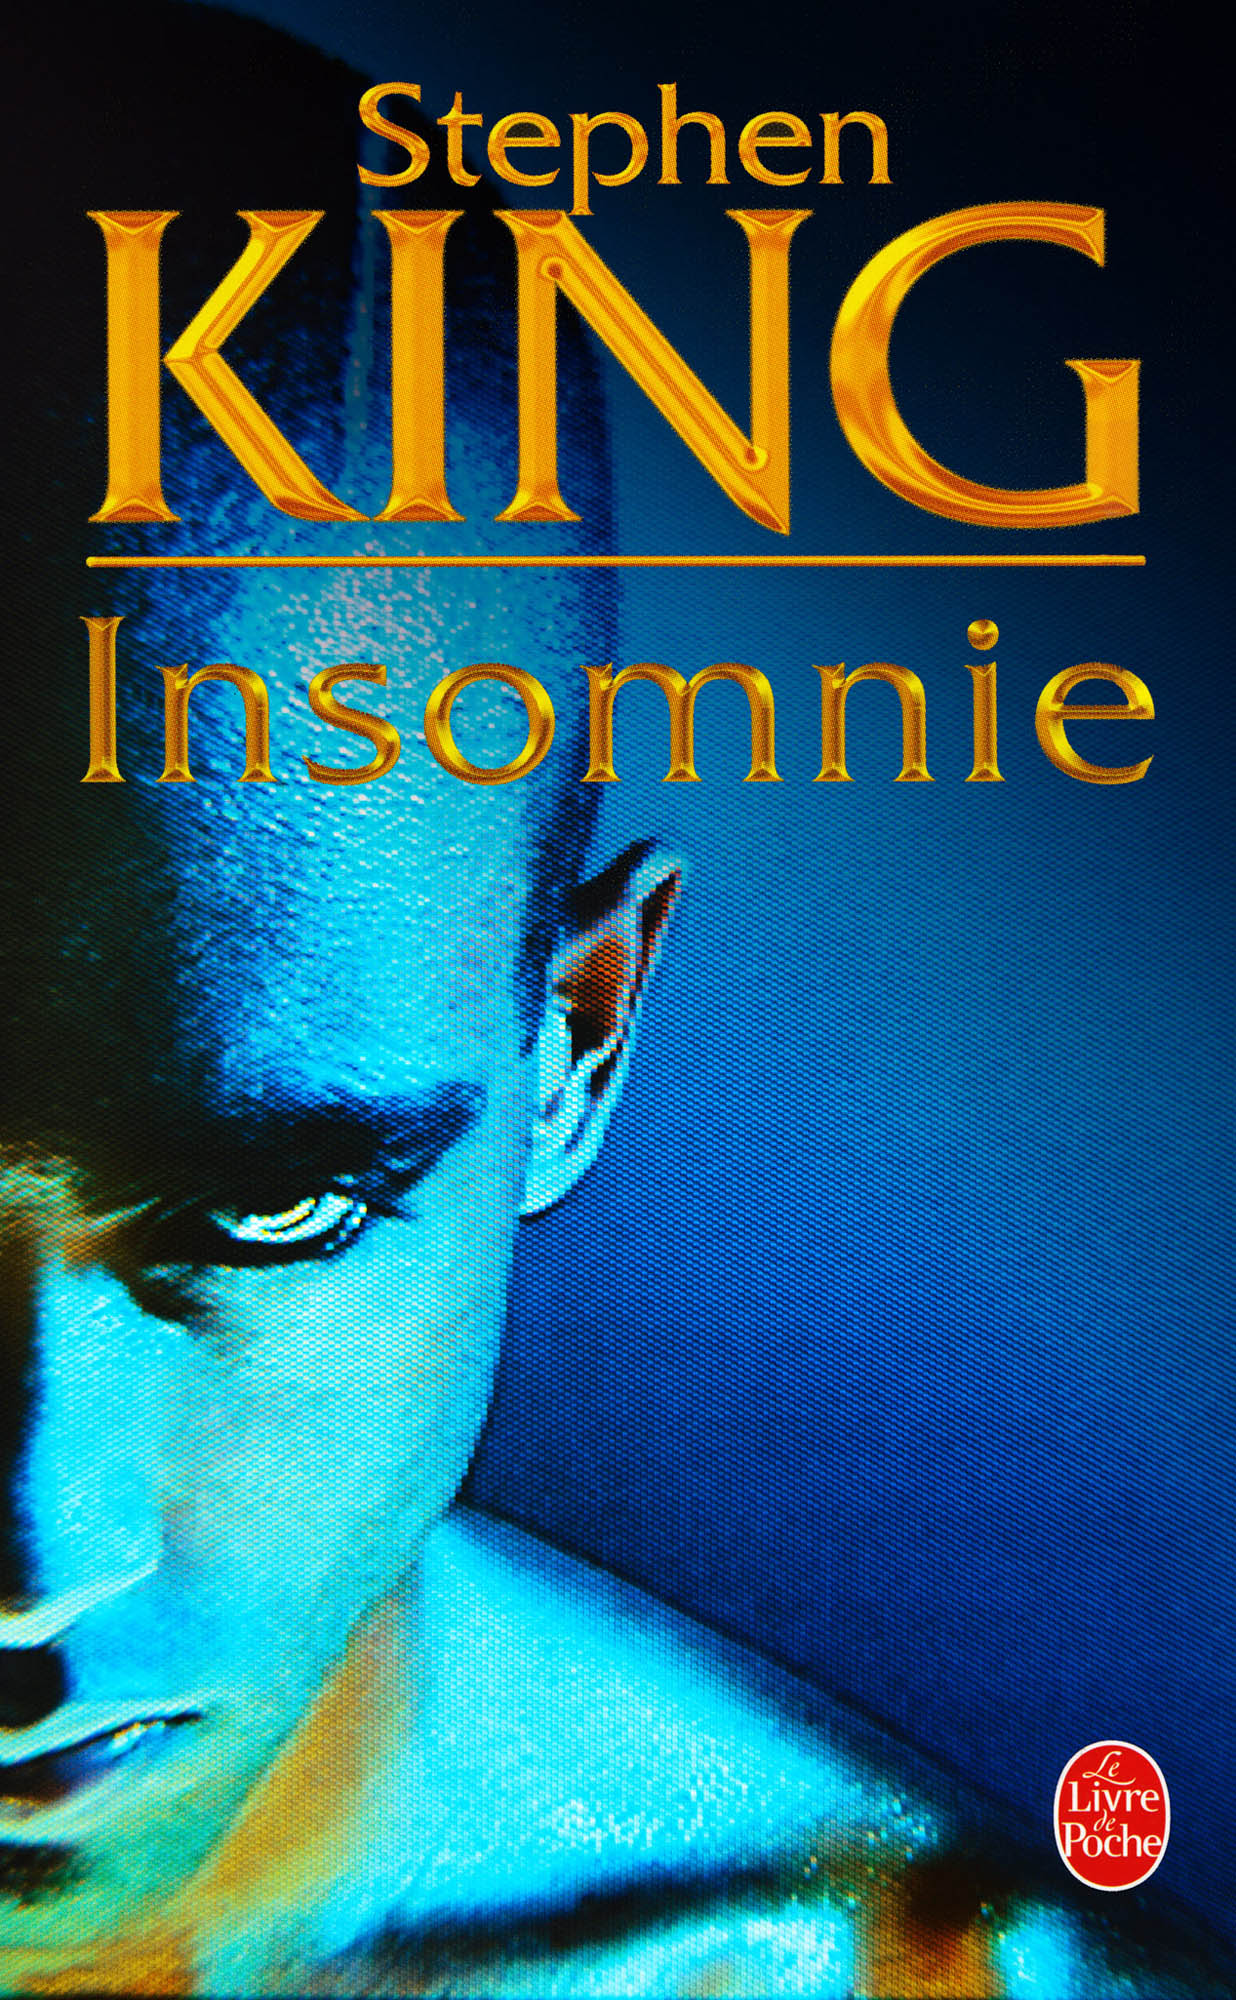 stephen_king_book_cover